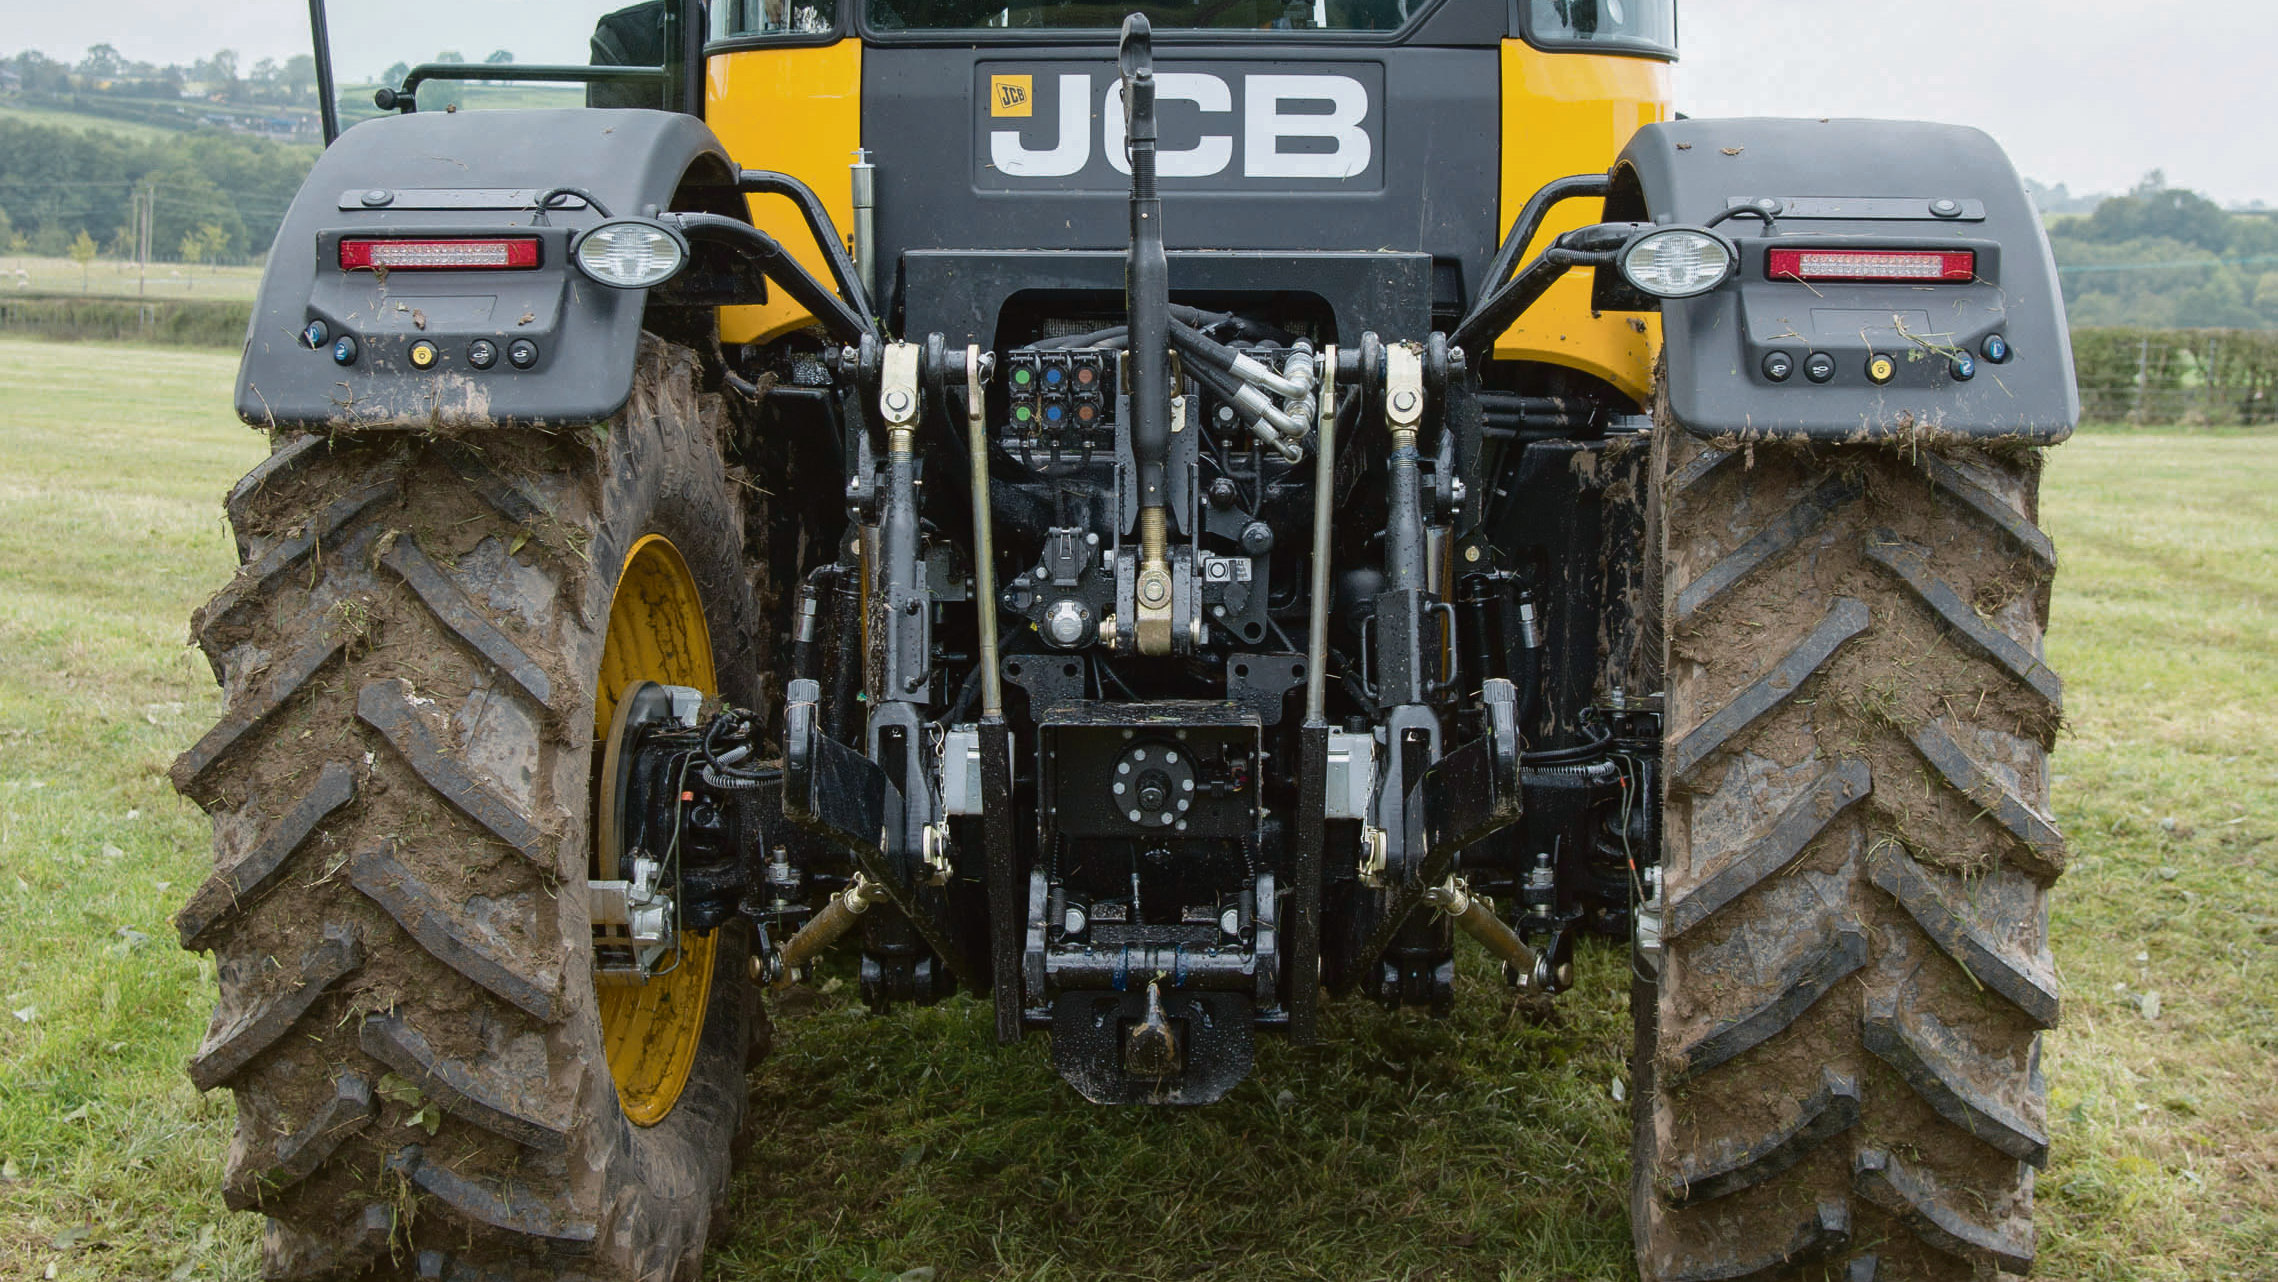 JCB rear and chassis